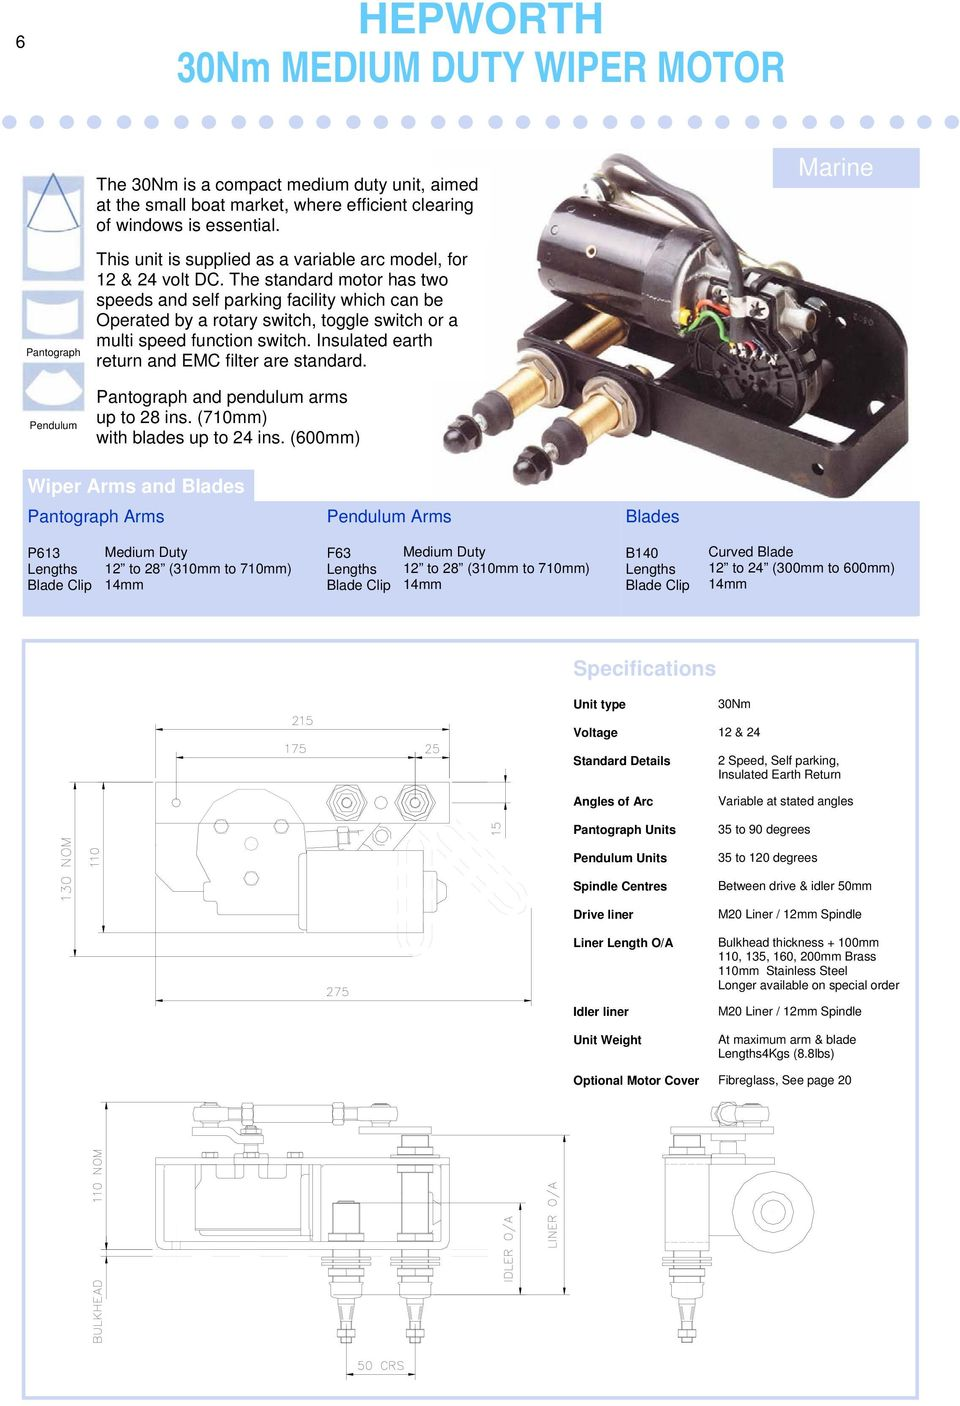 Windscreen Wiper Catalogue Pdf Wiring Of 12 Volt 2speed Steeringcolumnmounted Switch The Standard Motor Has Two Speeds And Self Parking Facility Which Can Be Operated By A